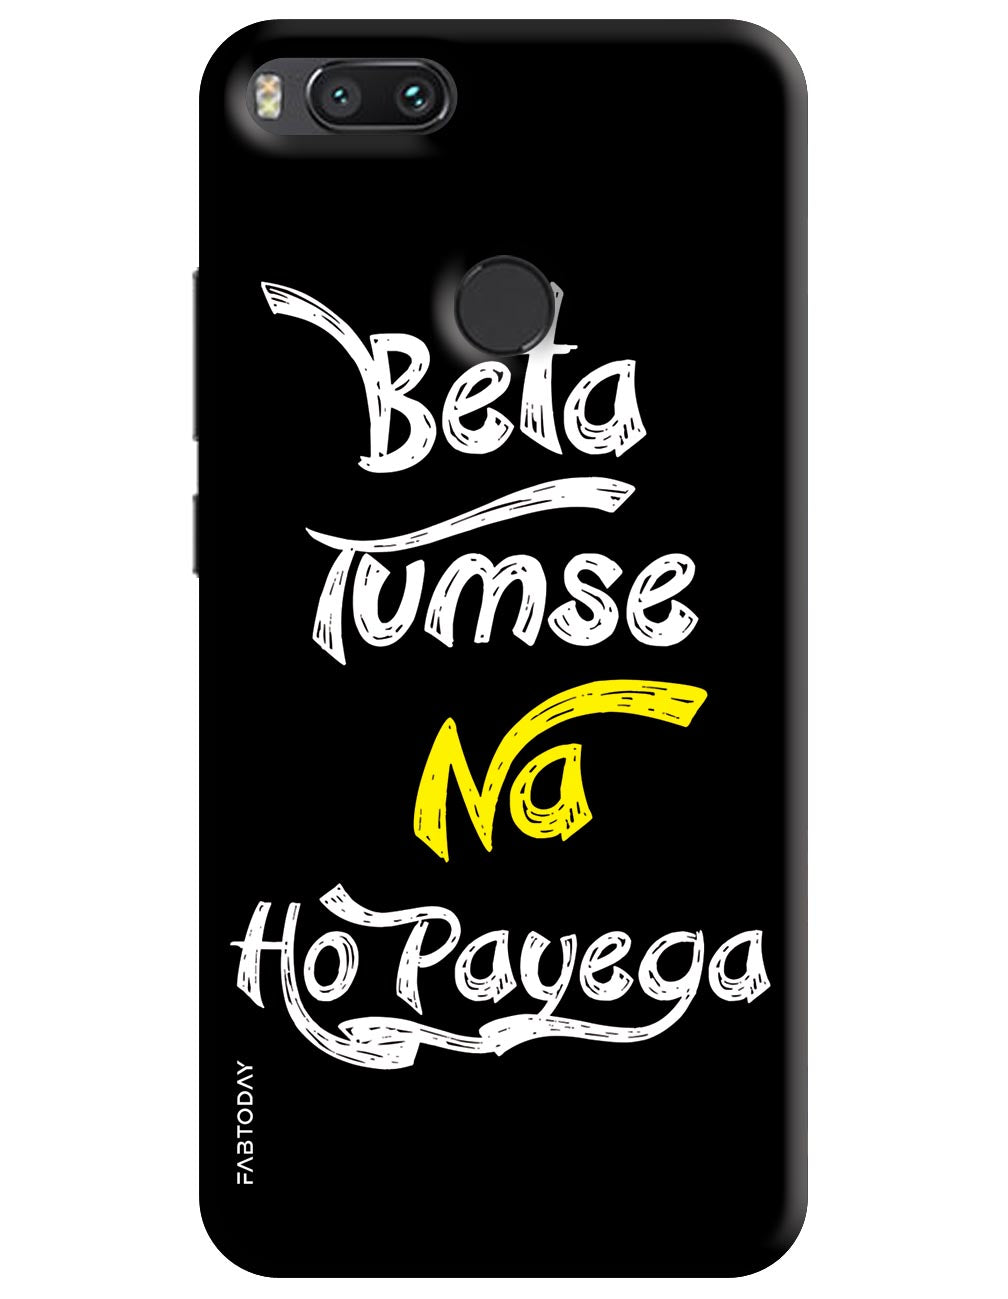 Beta Tumse Na Ho Payega Back Cover for Xiaomi Mi A1